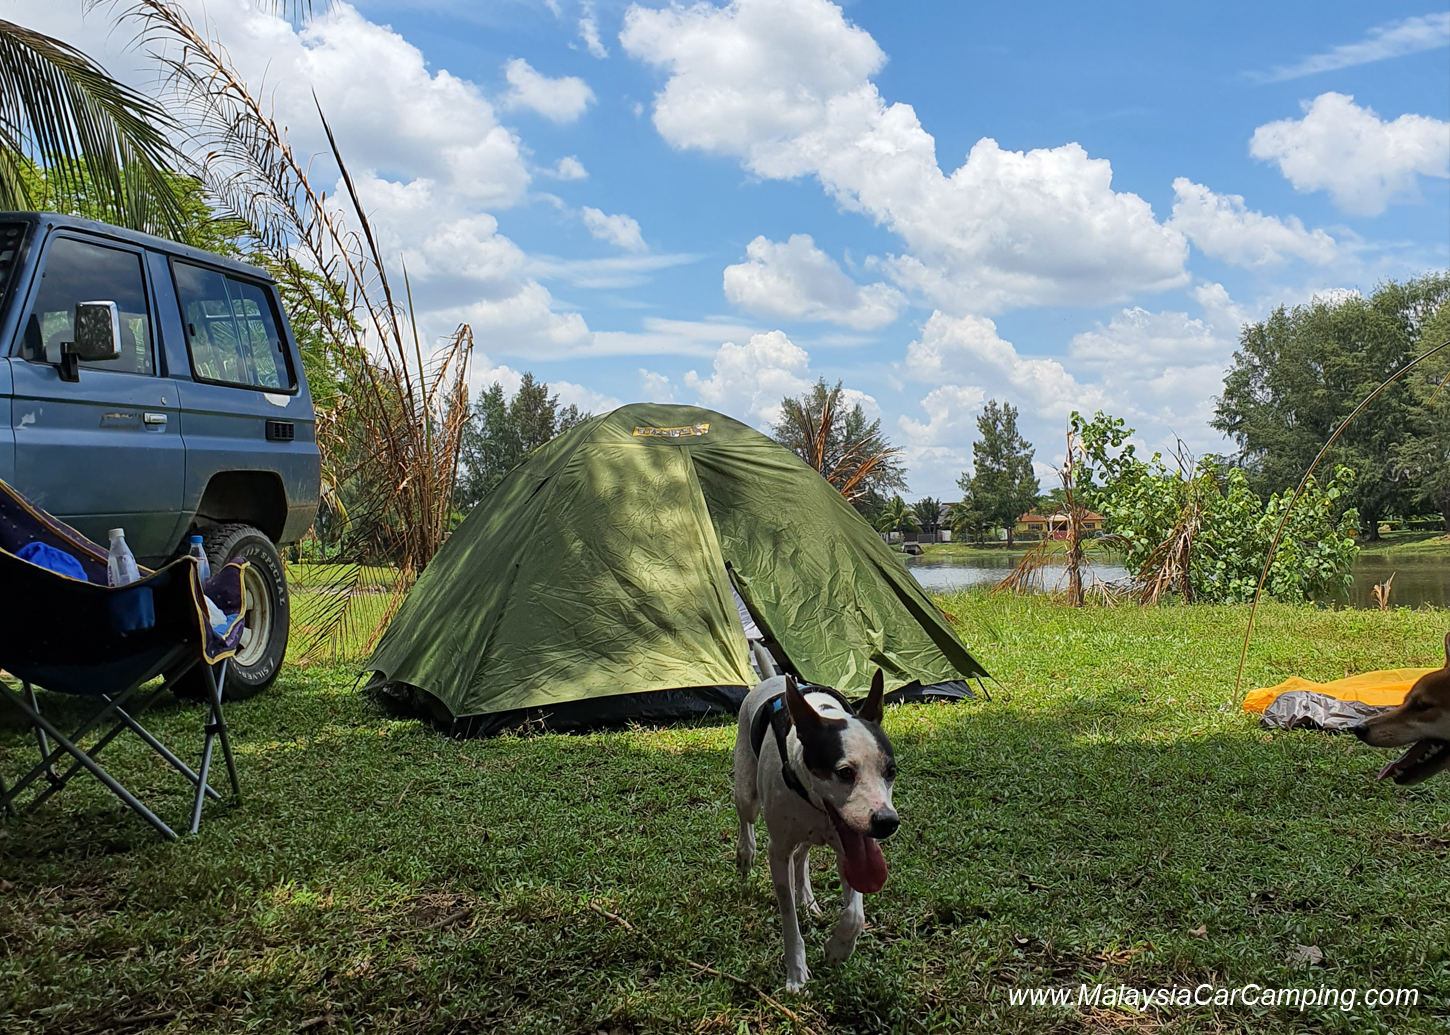 camping_with_dogs_puppy_lakeside_camping_malaysia_car_camping_malaysia_campsite-12